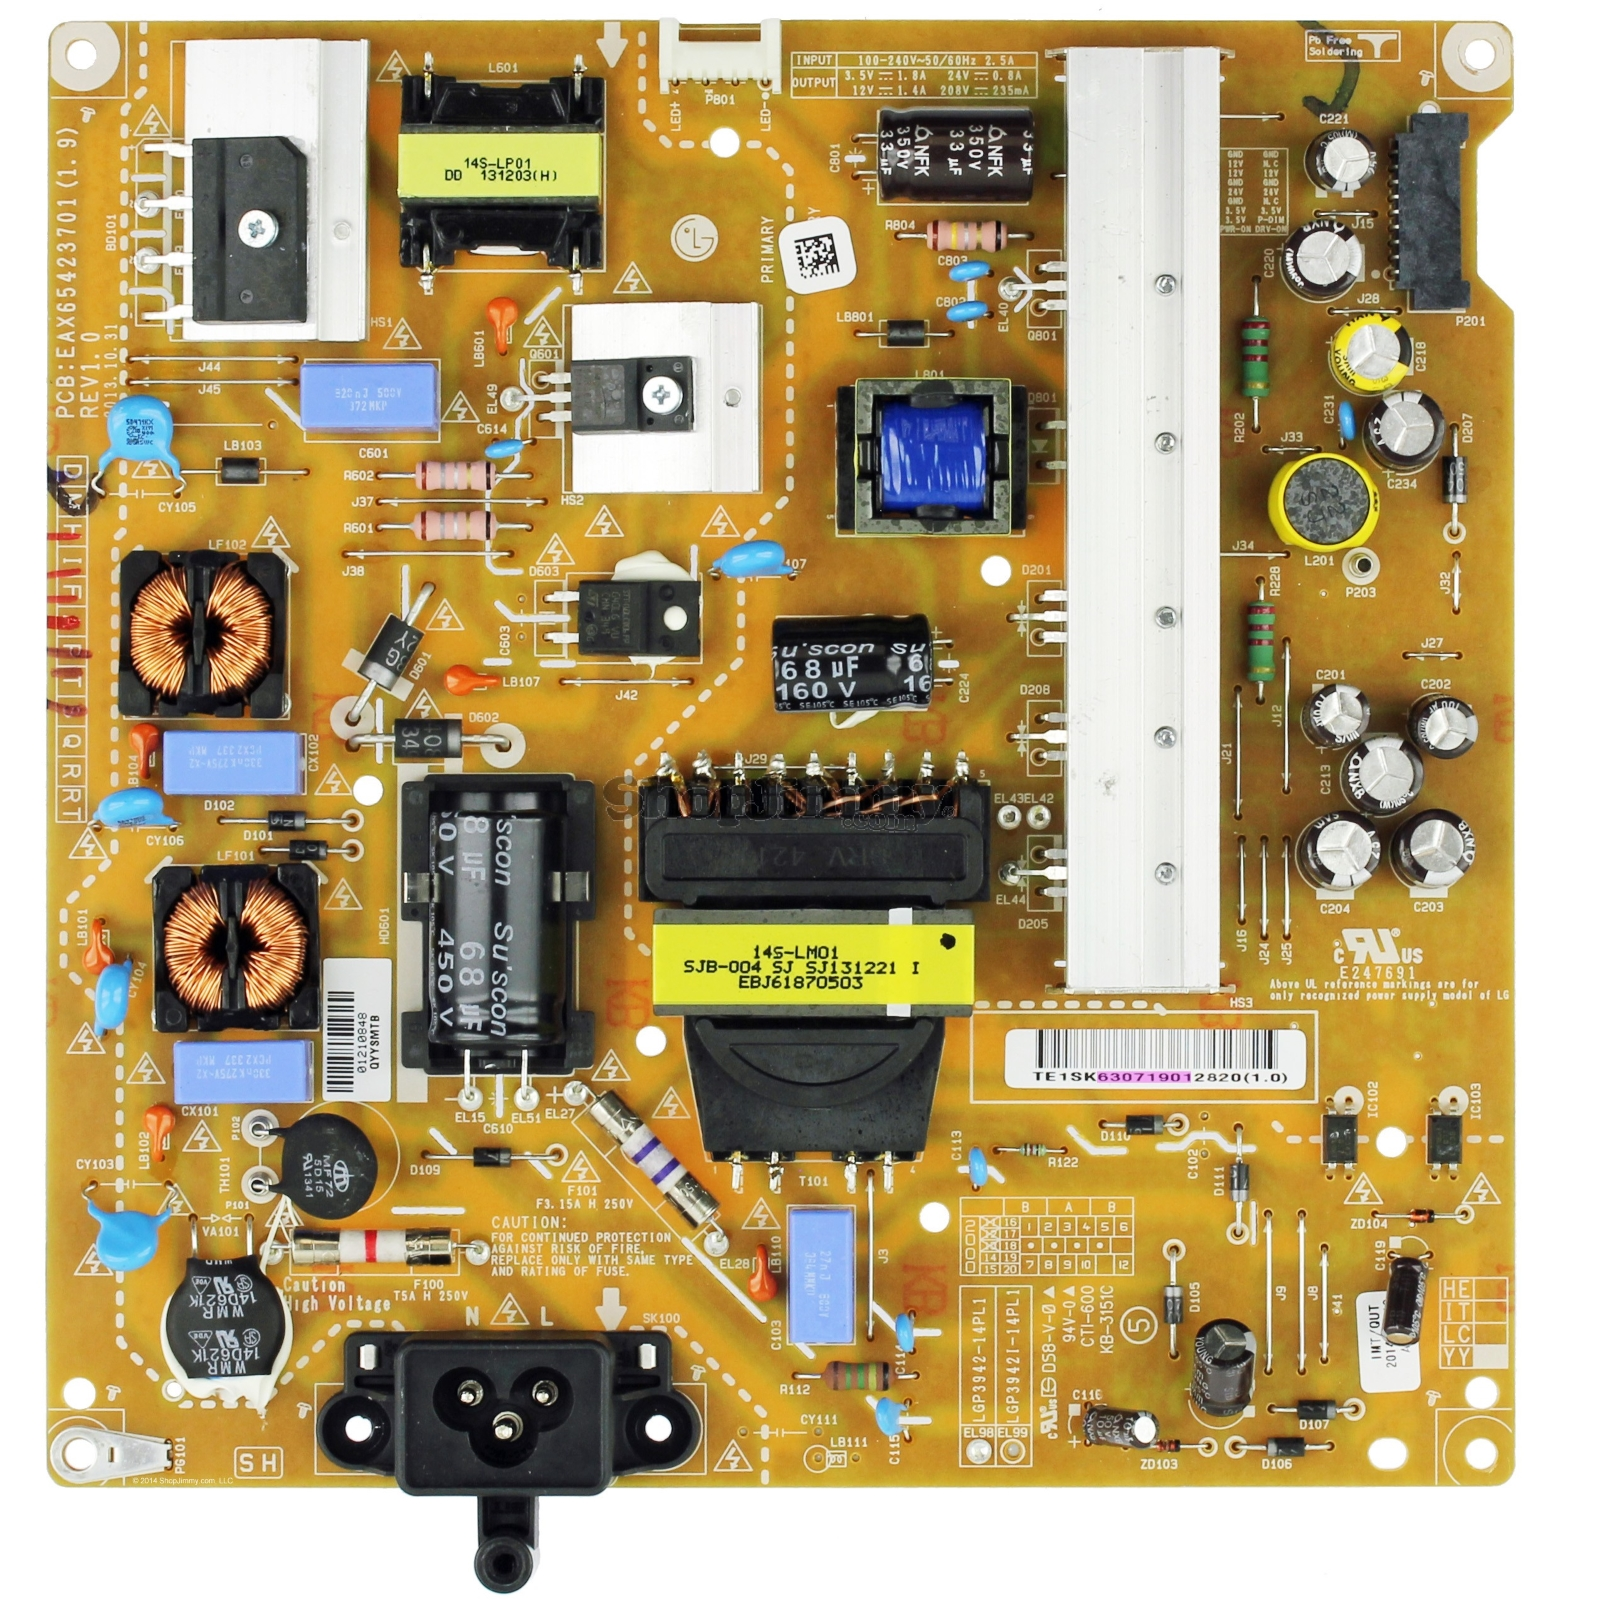 EAY63071901 Power Supply Assembly FREE LGP3942-14PL1-IT 14Y Power Board 39 42 INCH  = EAY63071905 = EAY63071906 = EBR78898301 = EAY63071904 = EAY63071902 = EAY63071901 Захранваща платка LG 39LB  42LB